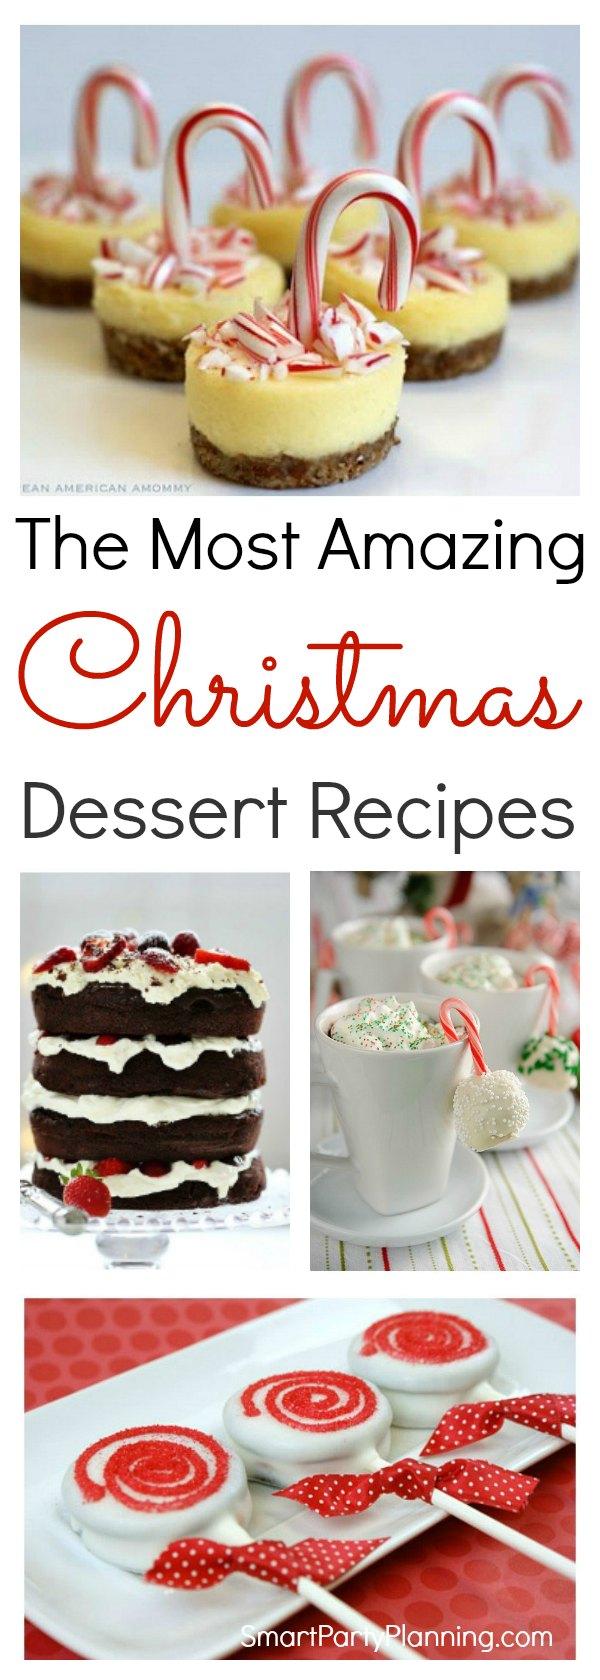 These Christmas dessert ideas will be loved by the entire family. Each recipe is quick and easy to make and will be perfect to serve up at Christmas parties. Prepare ahead of time and enjoy the season of entertaining.